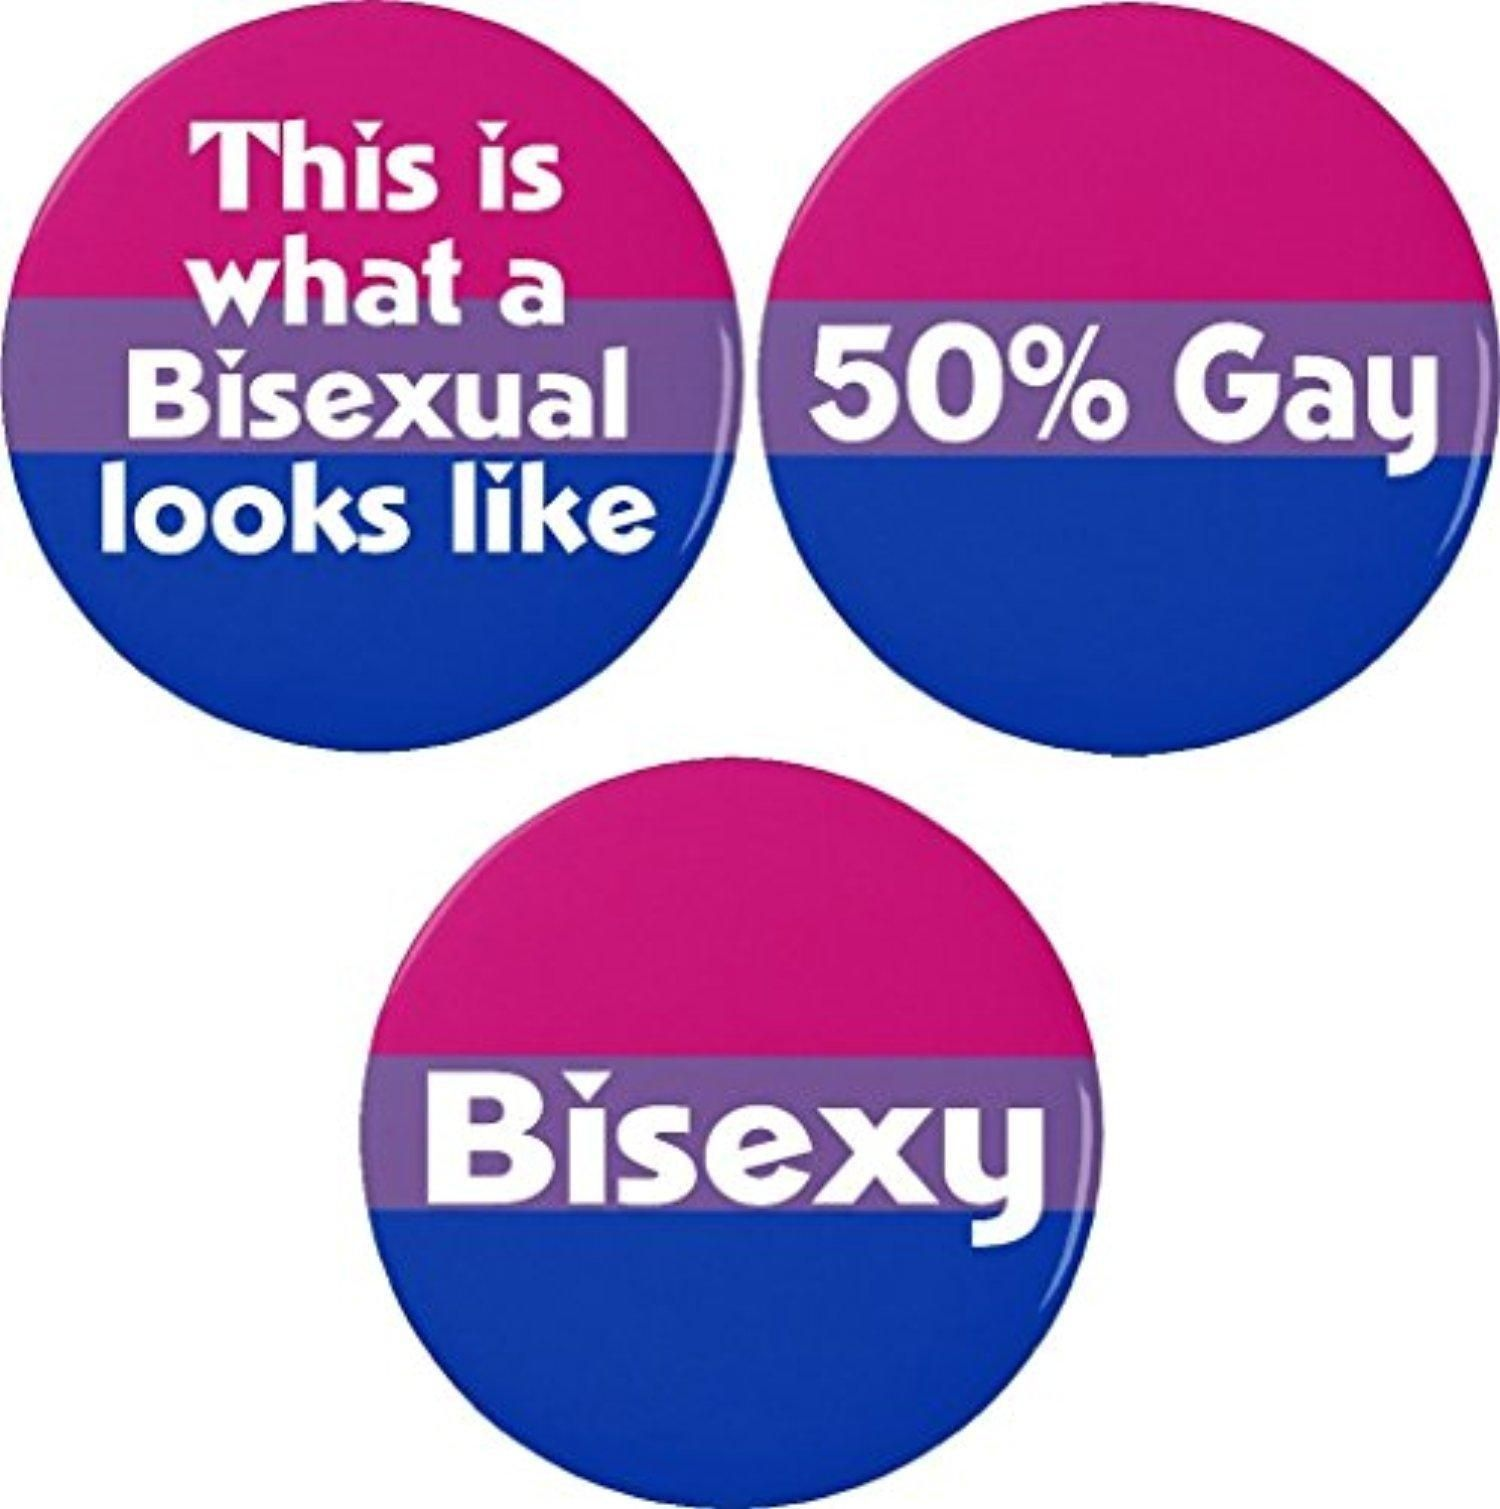 Lgbt Quotes Set 3 Bisexual Flag Quotes Magnets Bisexy Looks Like Lgbt Pride